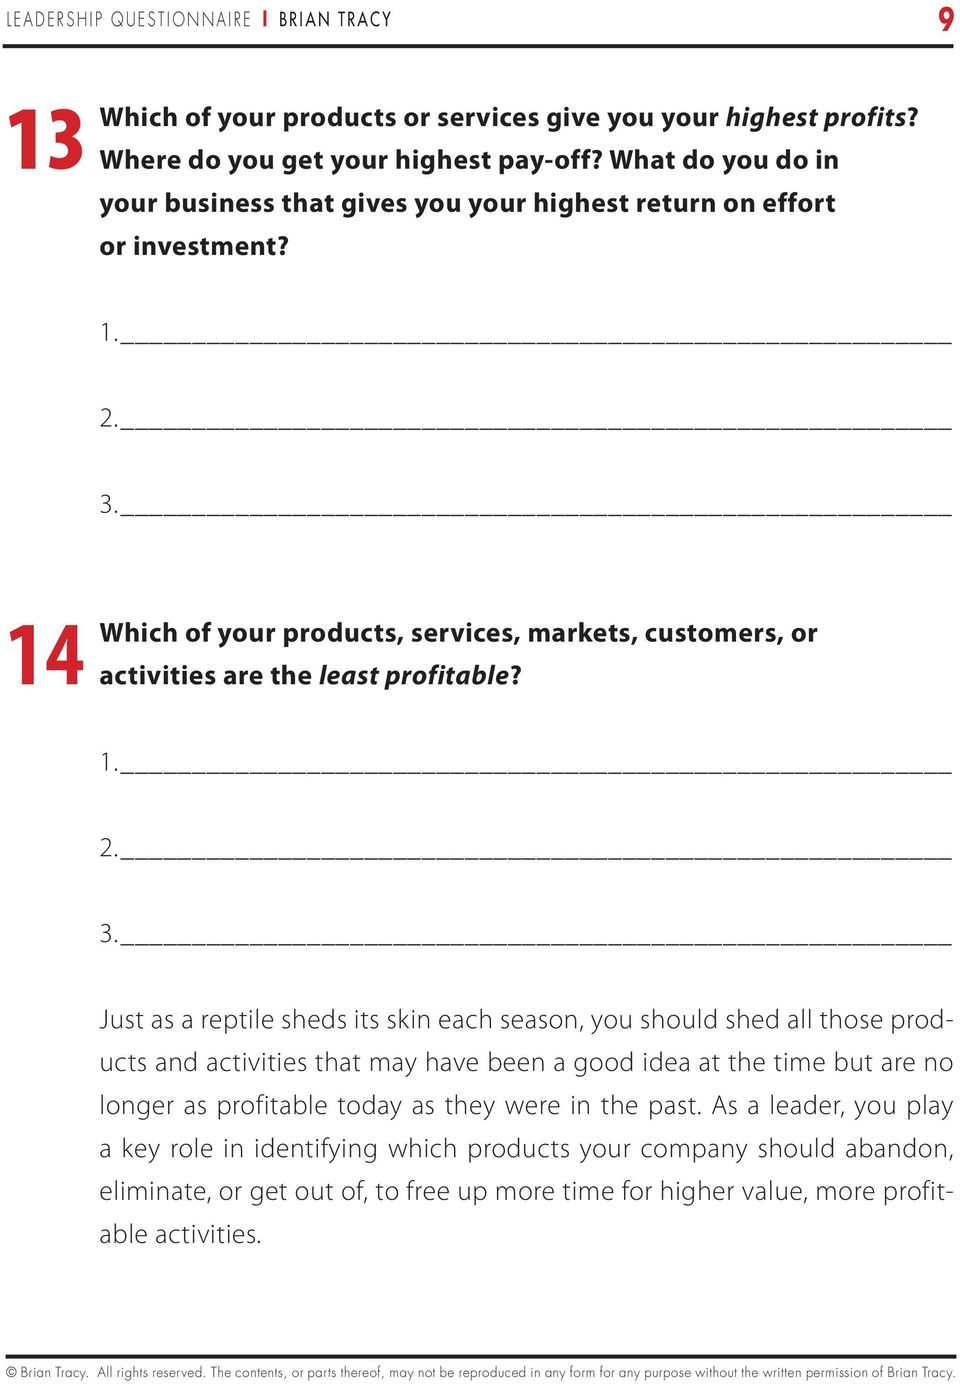 14 Which of your products, services, markets, customers, or activities are the least profitable?